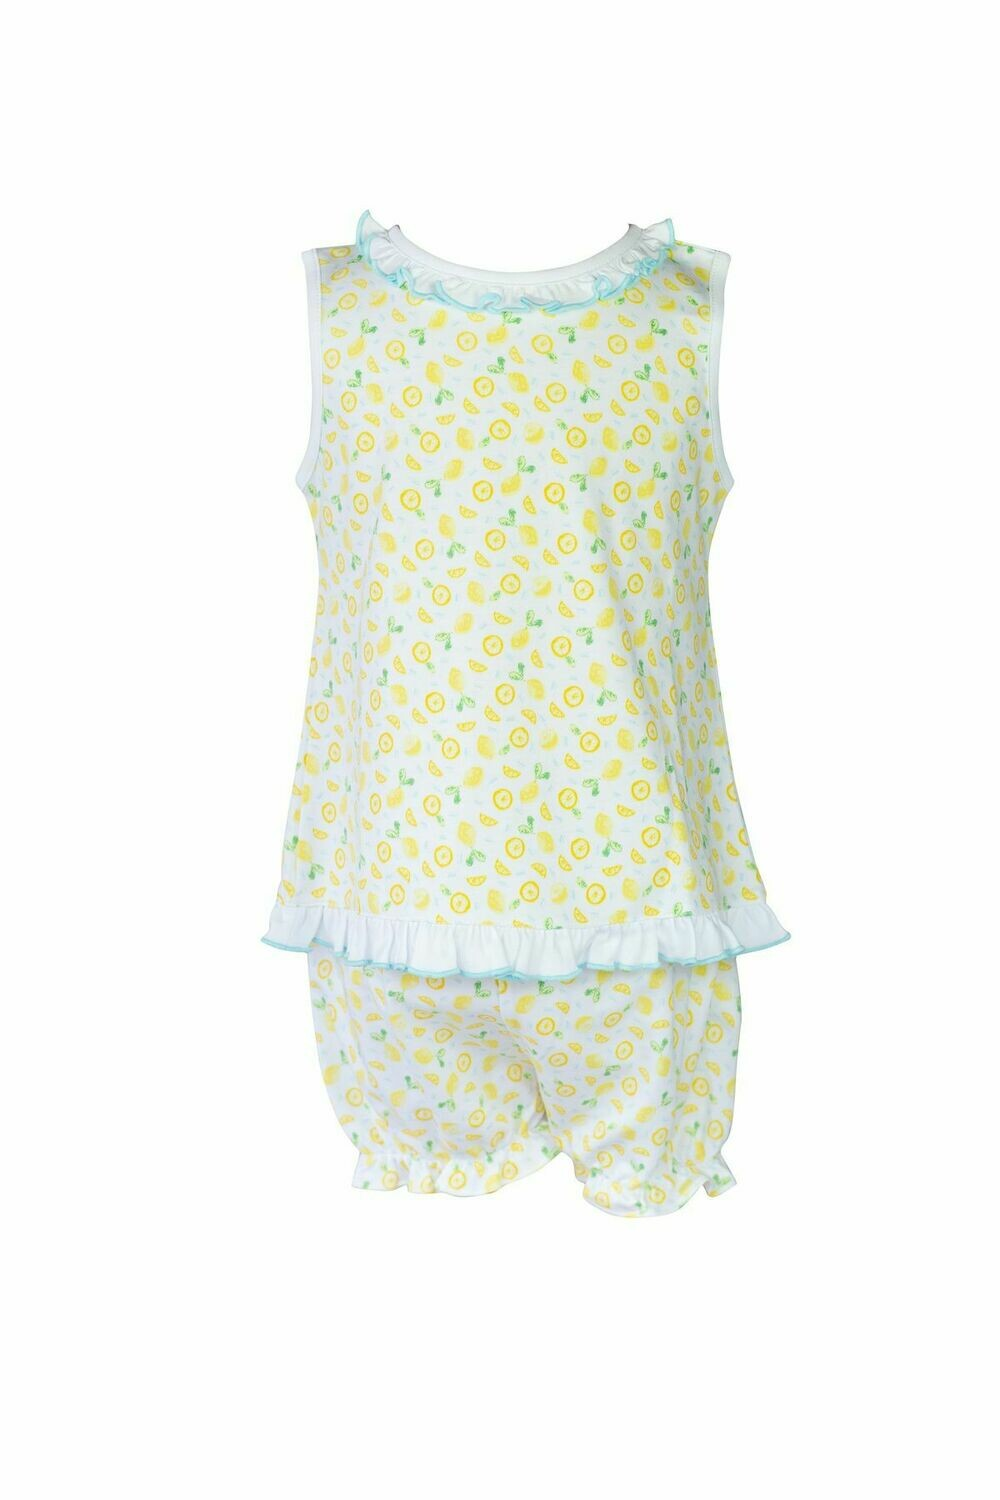 PP Ruffle Sleeveless Bloomer Set